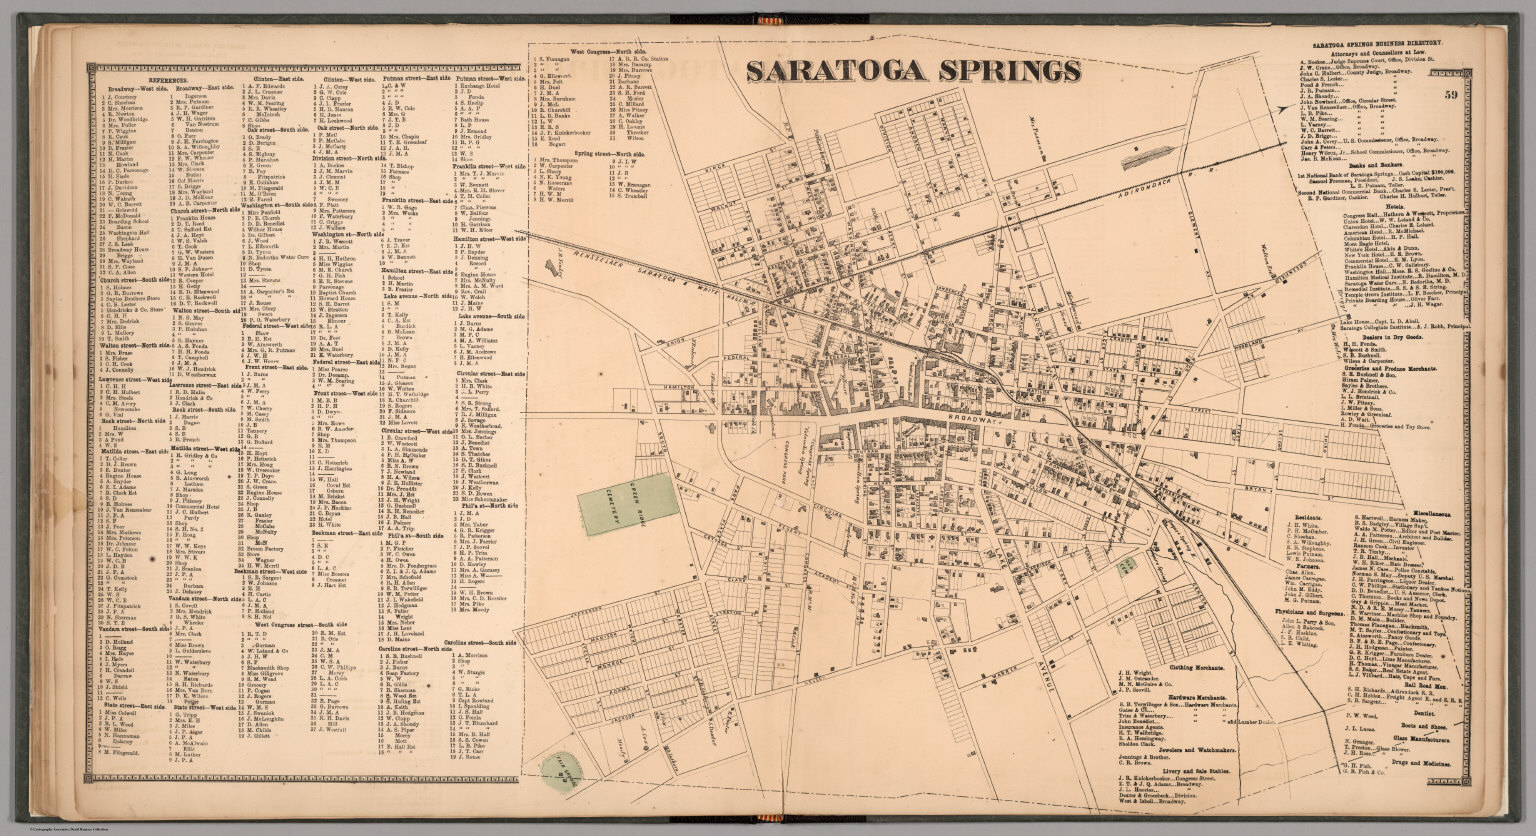 Saratoga Springs New York David Rumsey Historical Map Collection